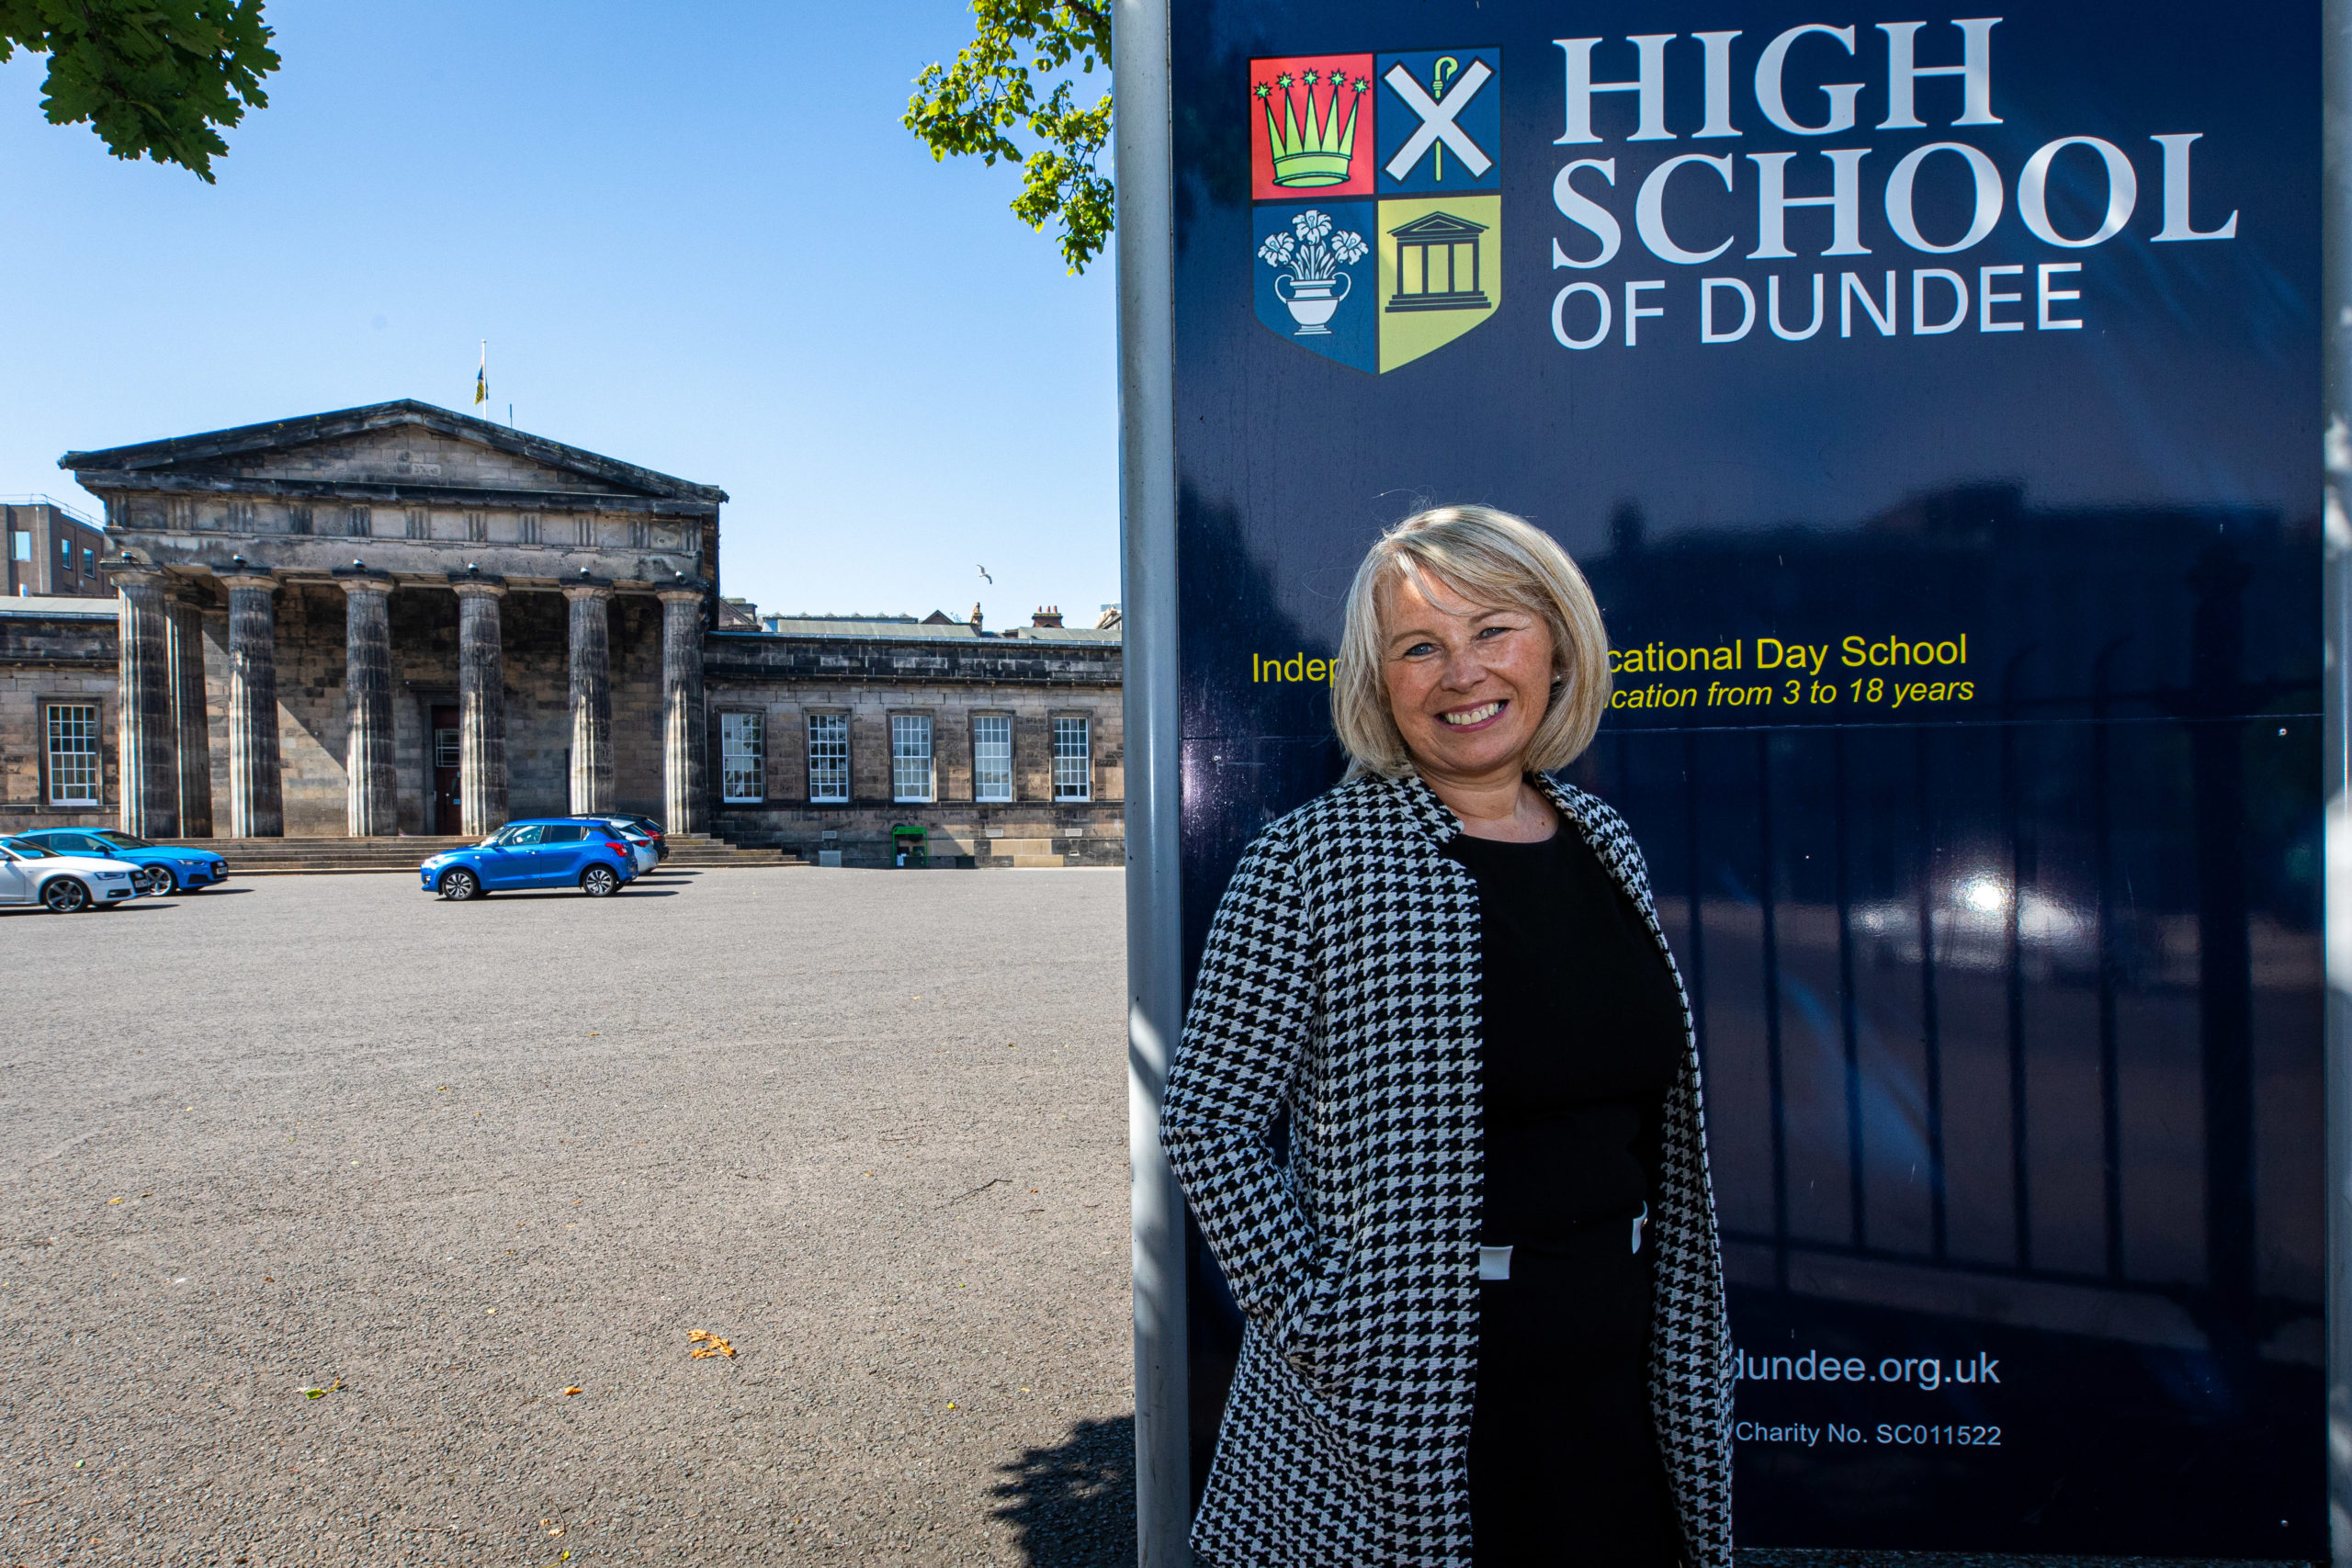 High School of Dundee rector Lise Hudson.